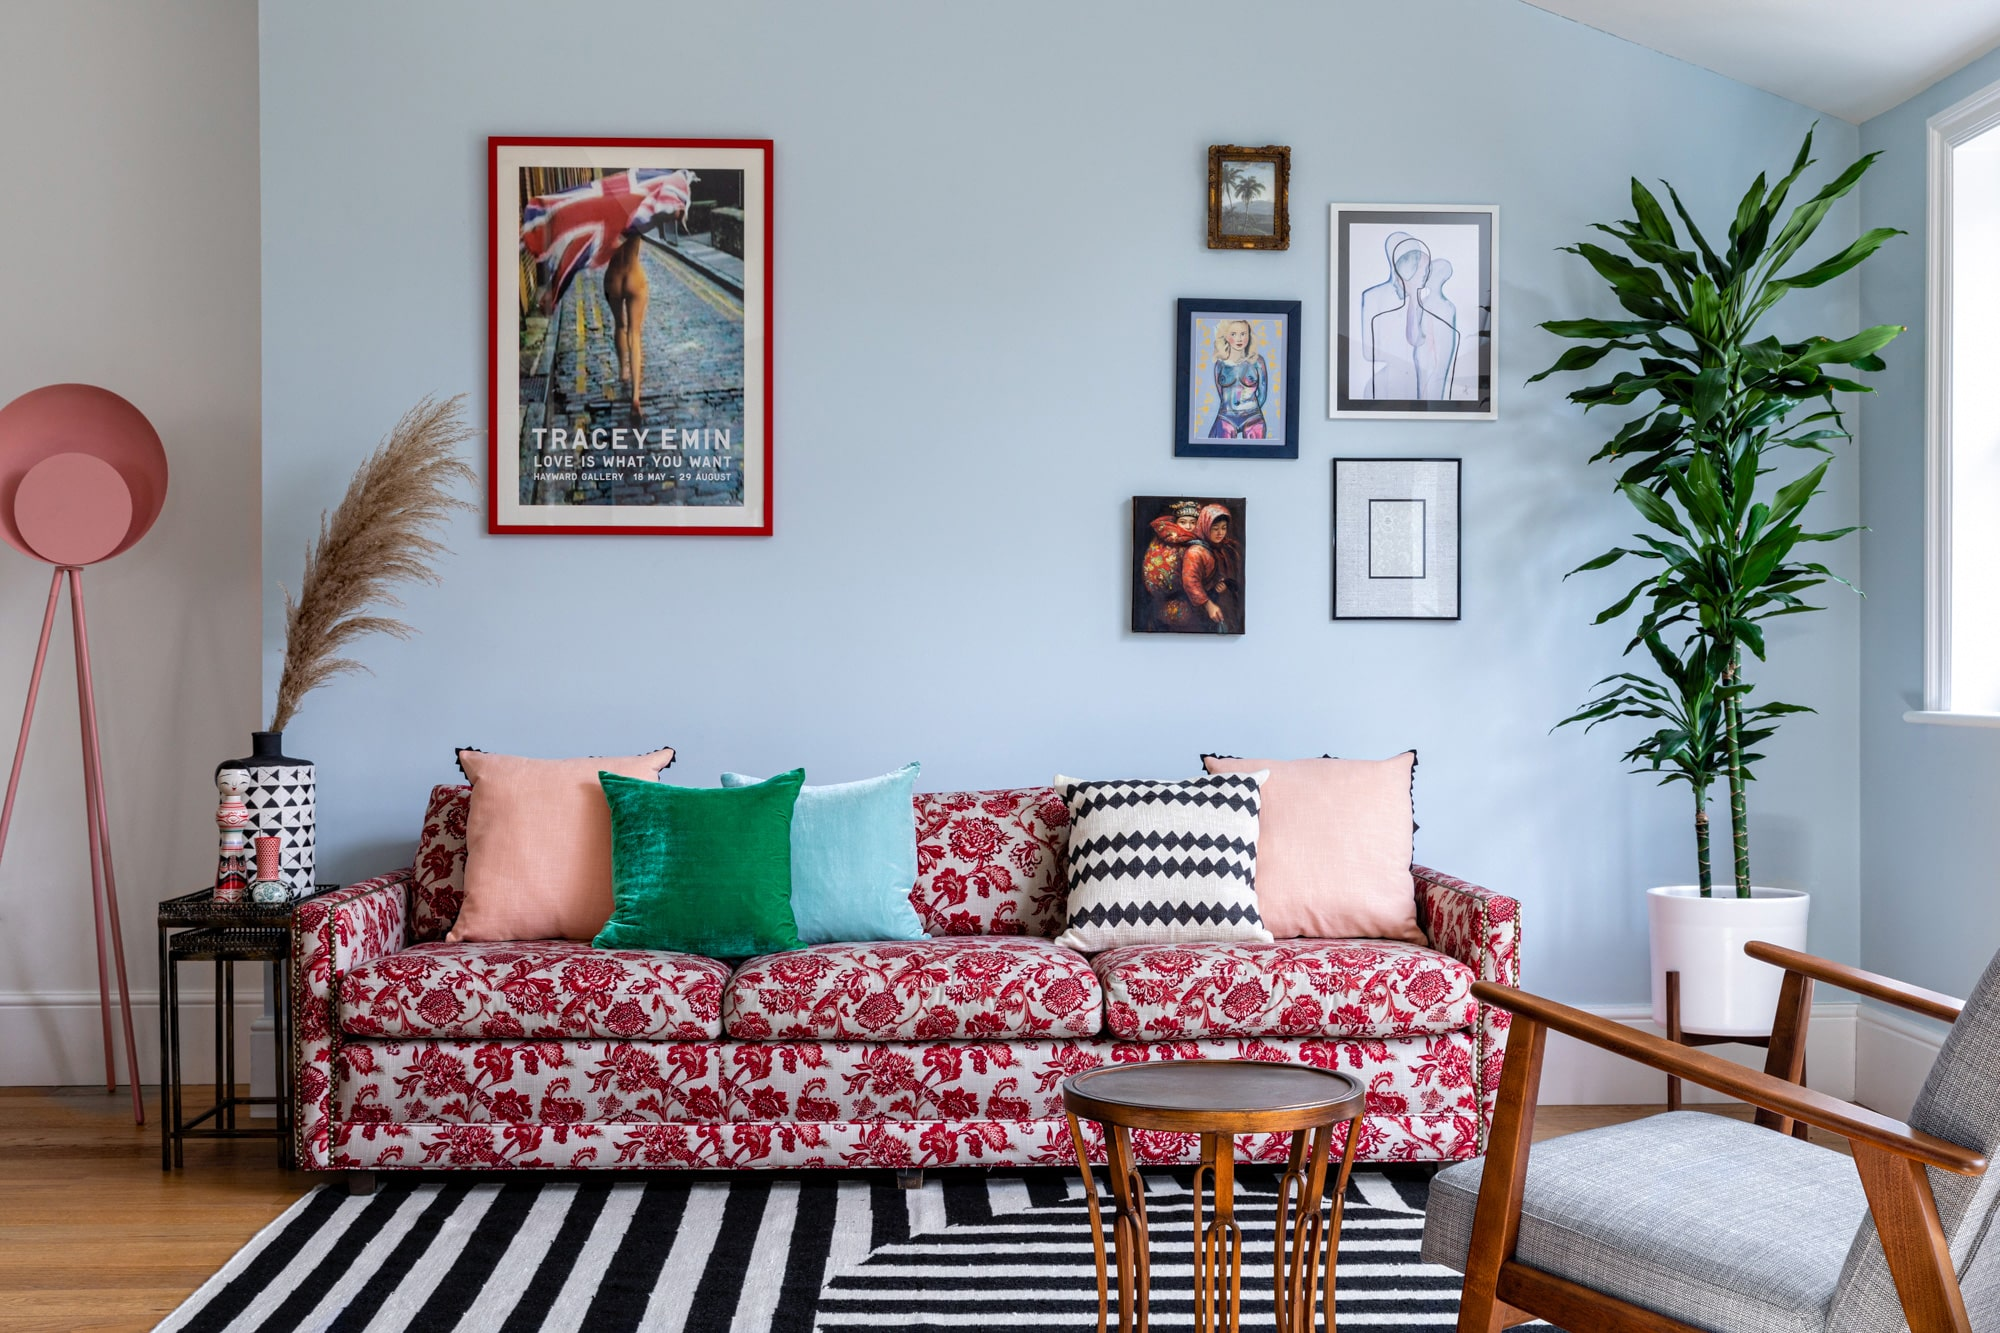 Interior photo of a living room: light blue walls; sofa with red pattern; colourful cushions; Tracey Emin poster; black and white striped rug; wall art gallery